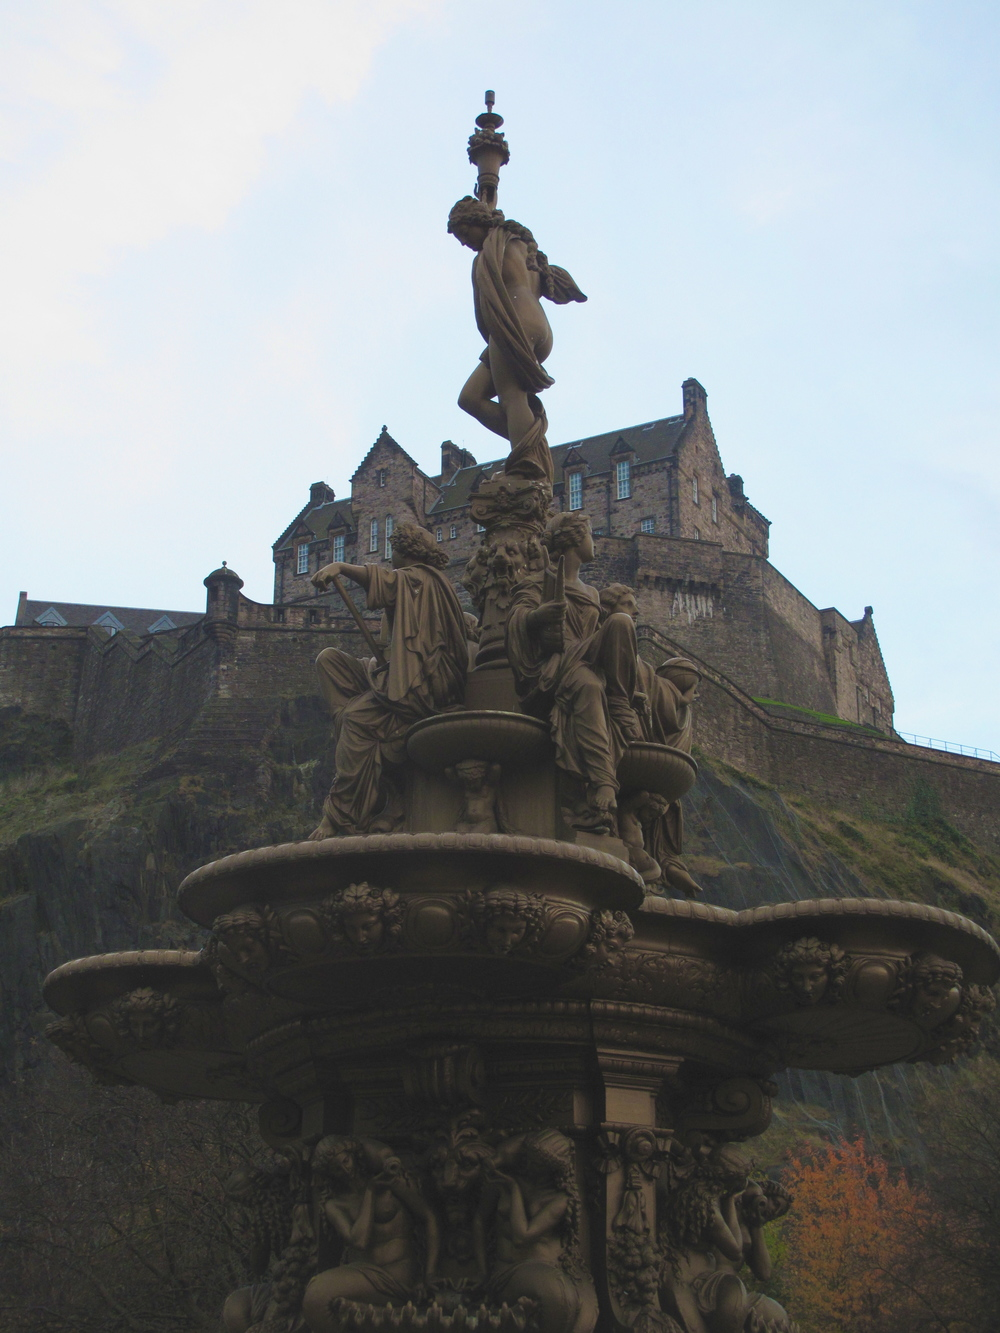 Fountain in the Princes Street Gardens, Edinburgh Castle in the background.